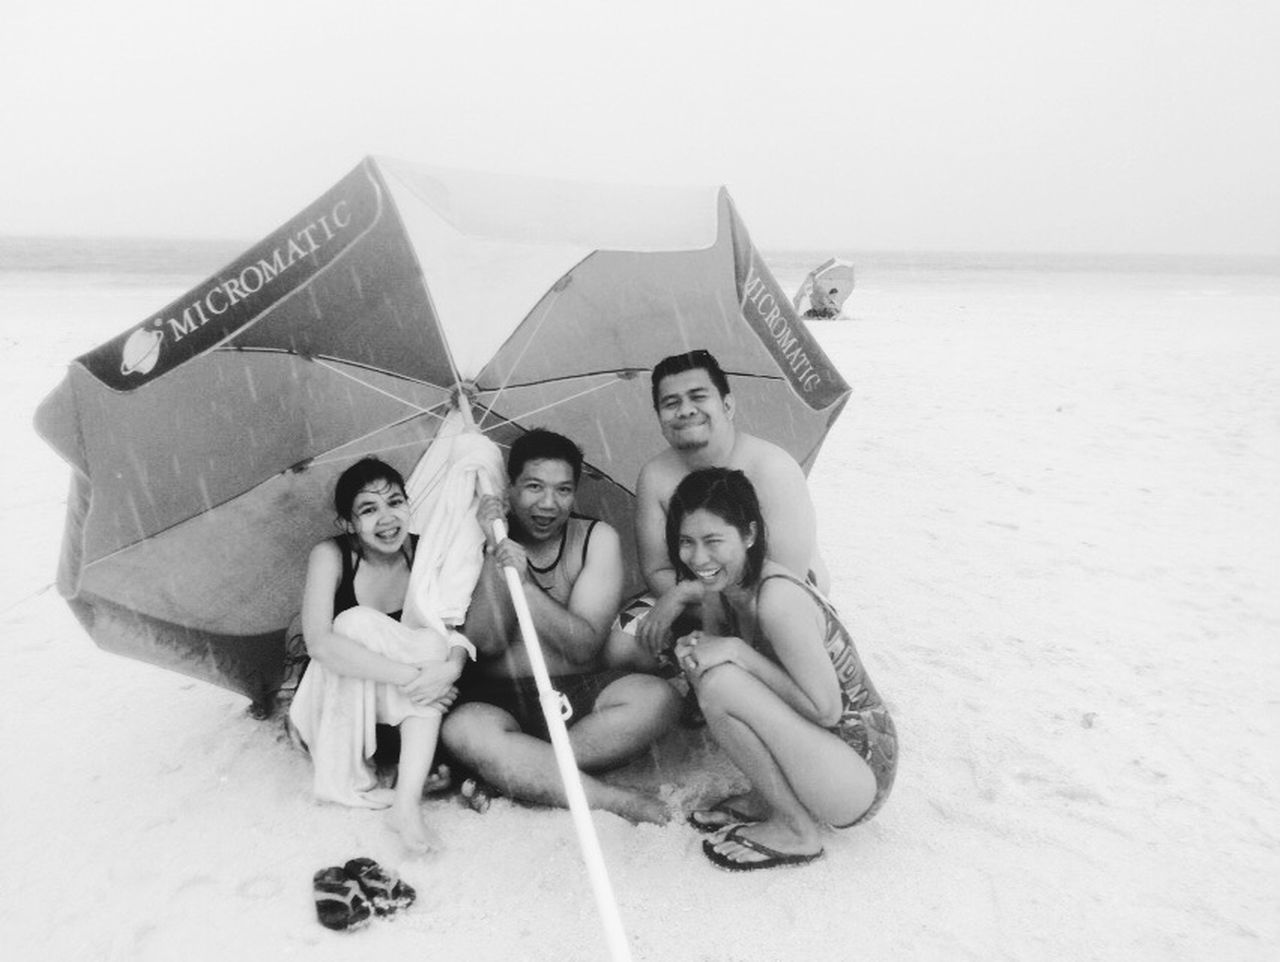 beach, childhood, boys, happiness, togetherness, friendship, vacations, fun, holding, leisure activity, full length, cheerful, portrait, outdoors, enjoyment, sand, looking at camera, summer, day, child, sea, sitting, smiling, group of people, girls, real people, young adult, water, young women, sky, people